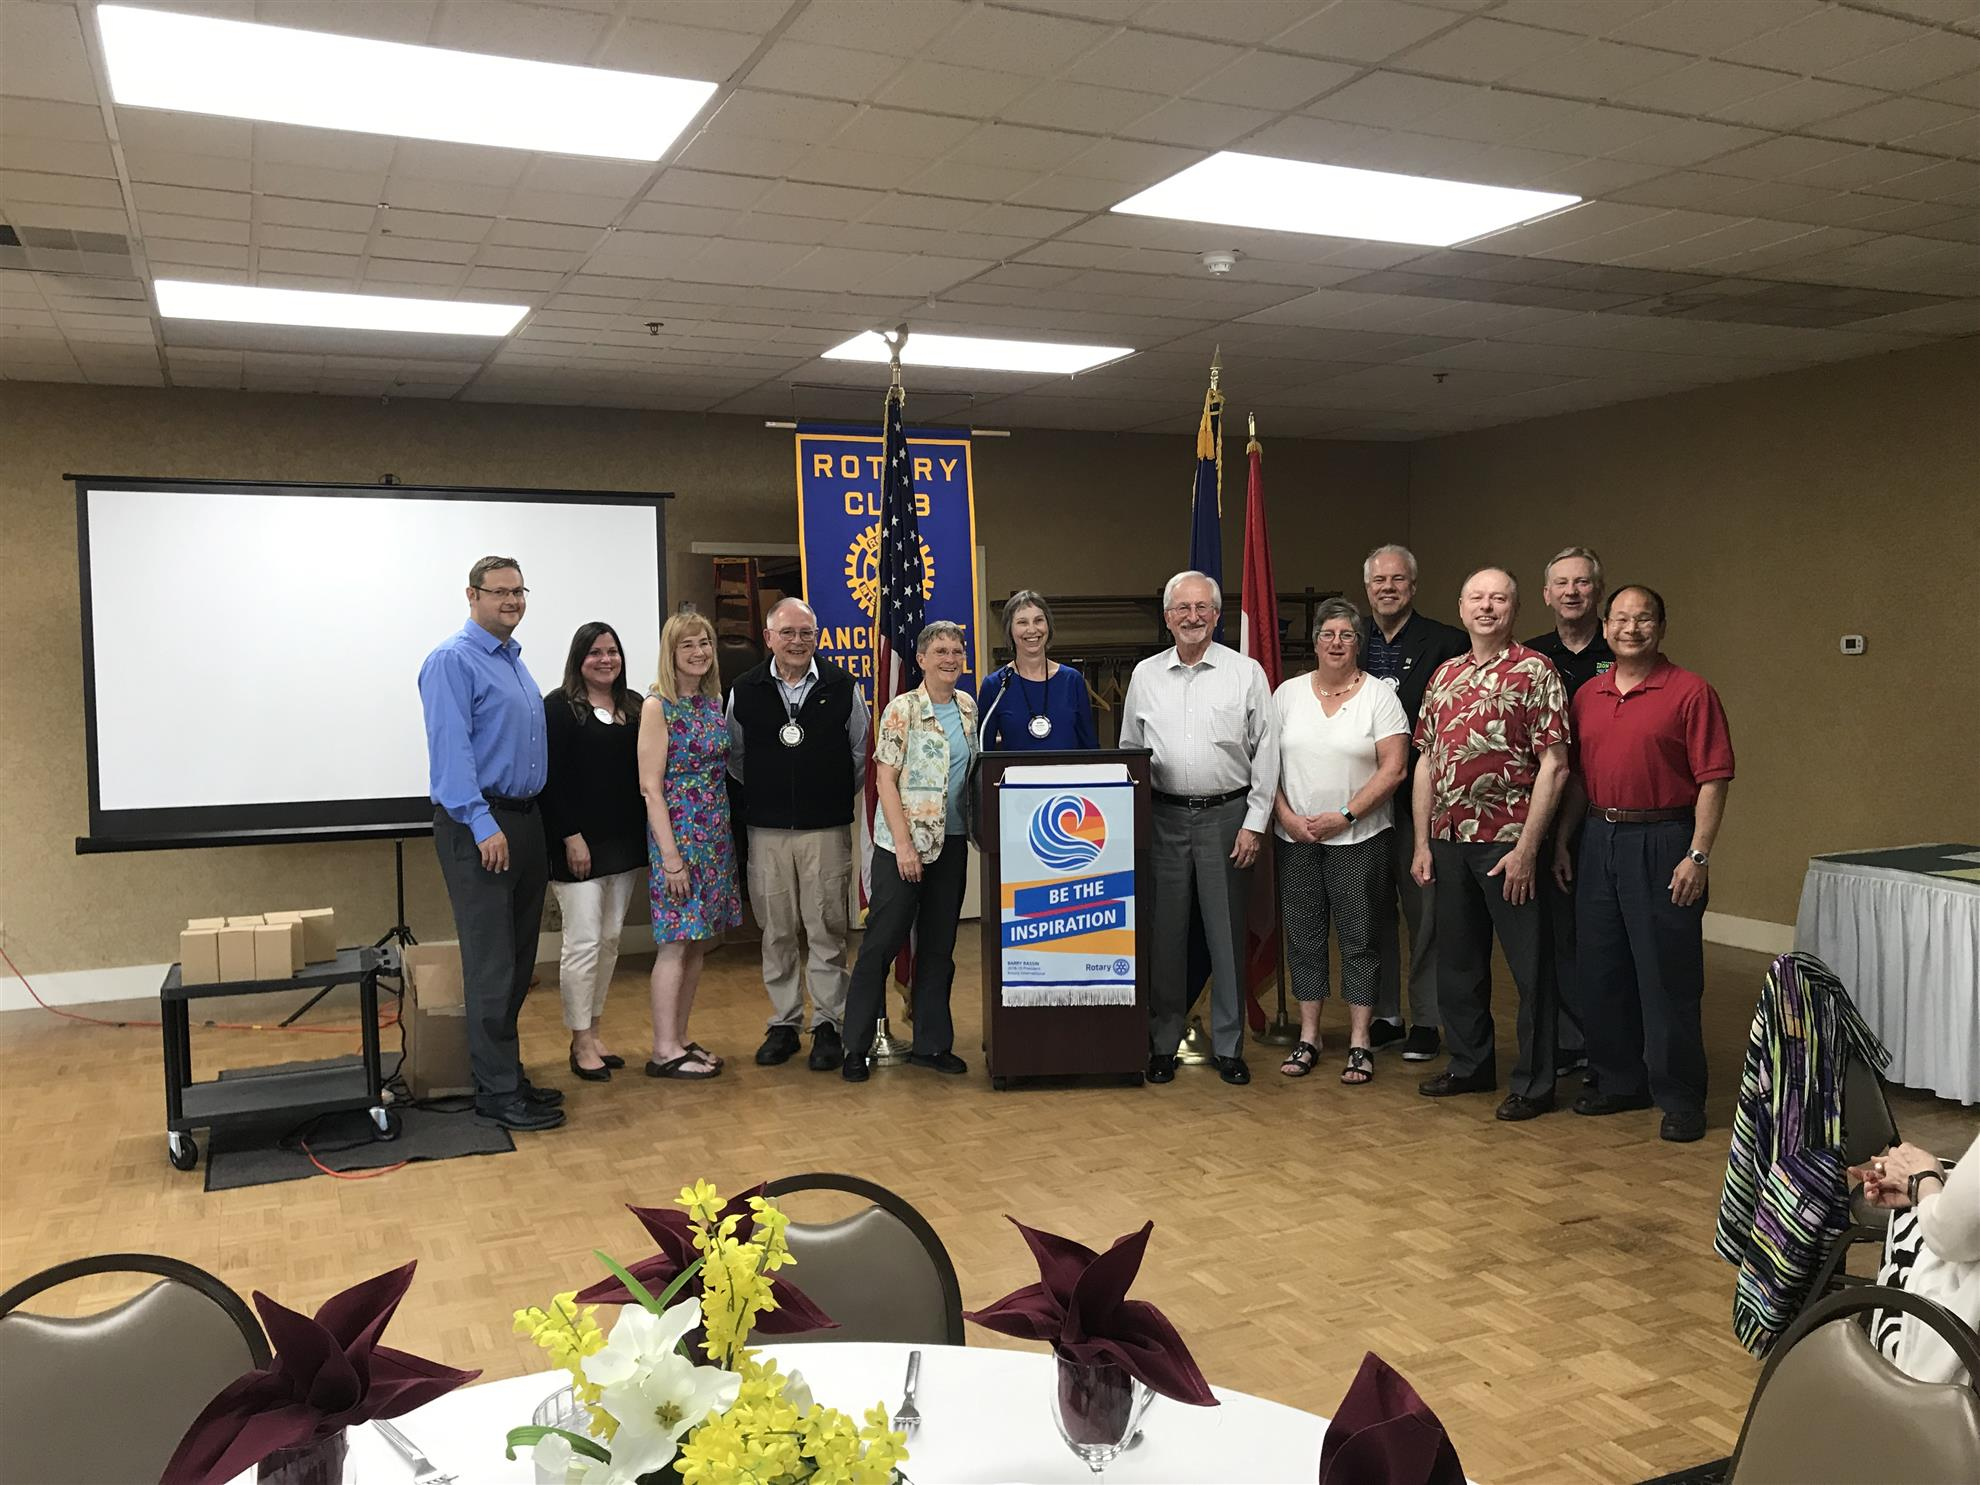 Stories | Anchorage International Rotary Club